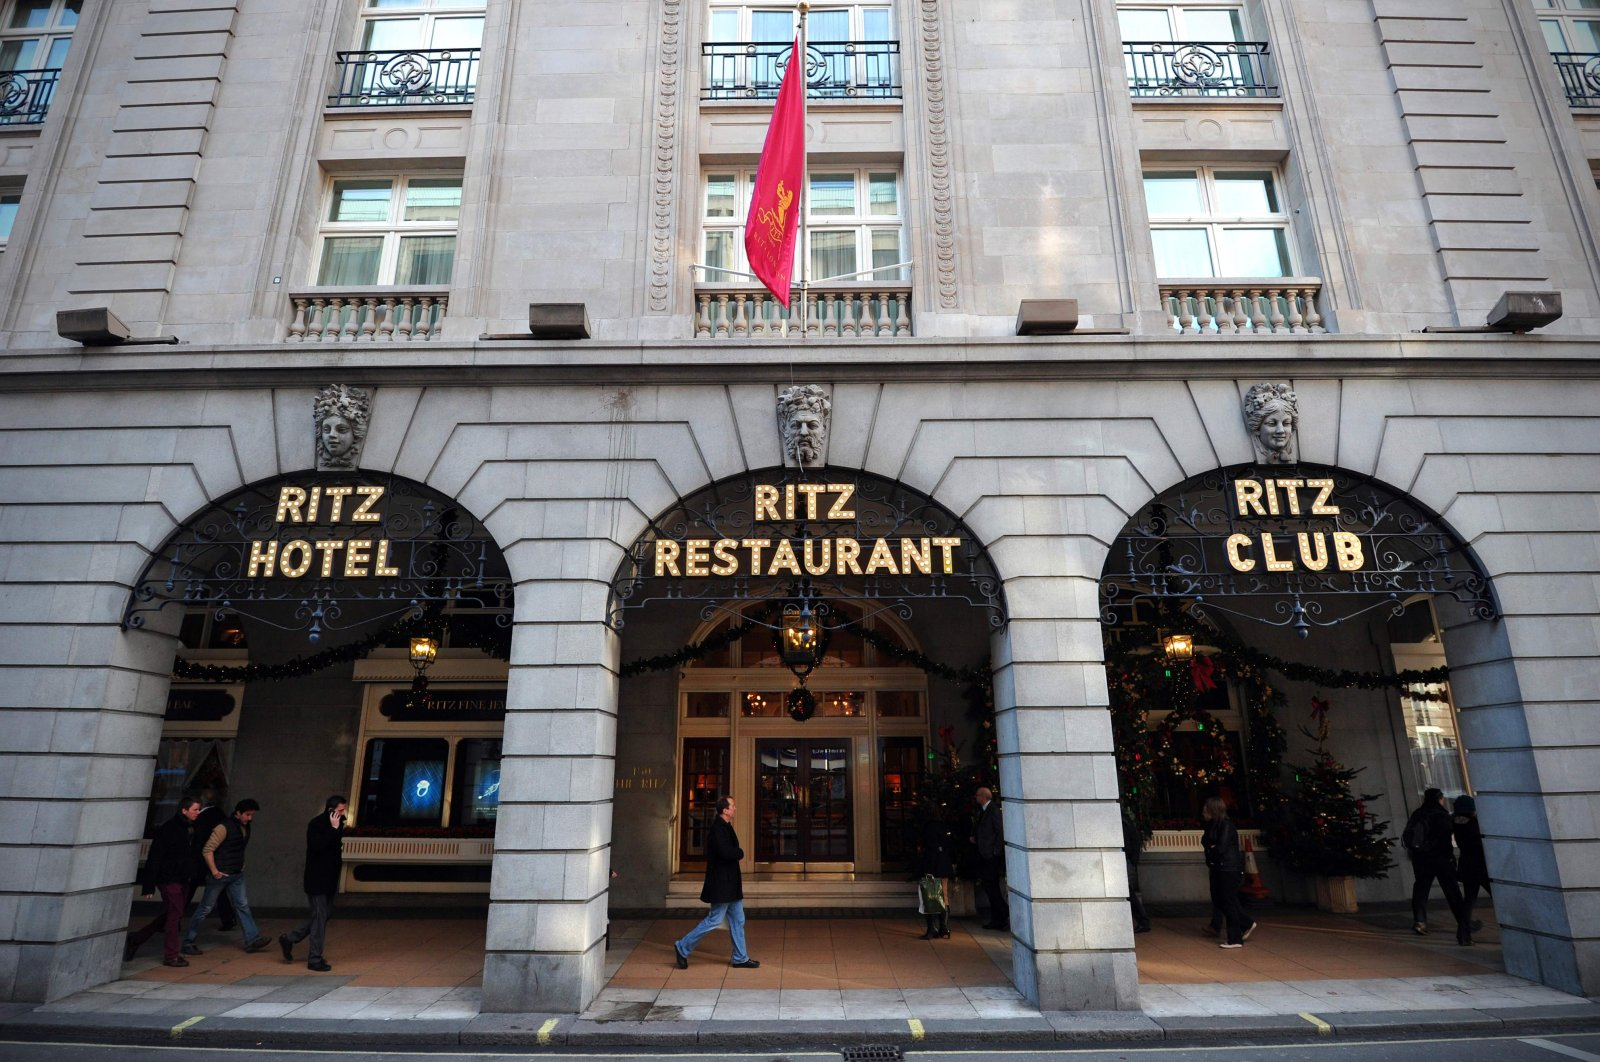 People walk past The Ritz hotel in central London, Dec.17, 2012.  (AFP Photo)